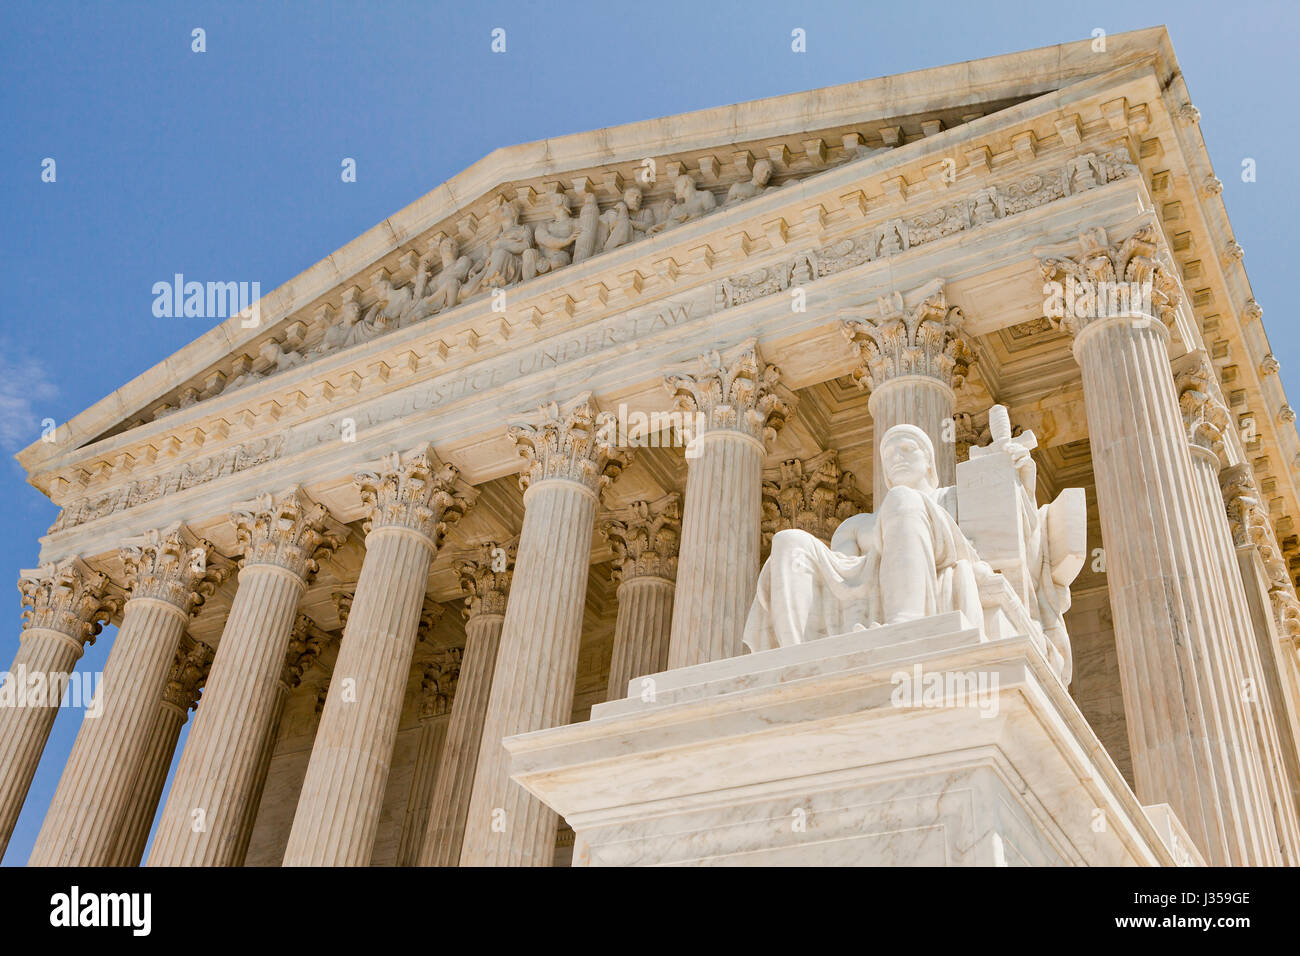 The Authority of the Law statue in front of the US Supreme Court building  - Washington, DC USA - Stock Image